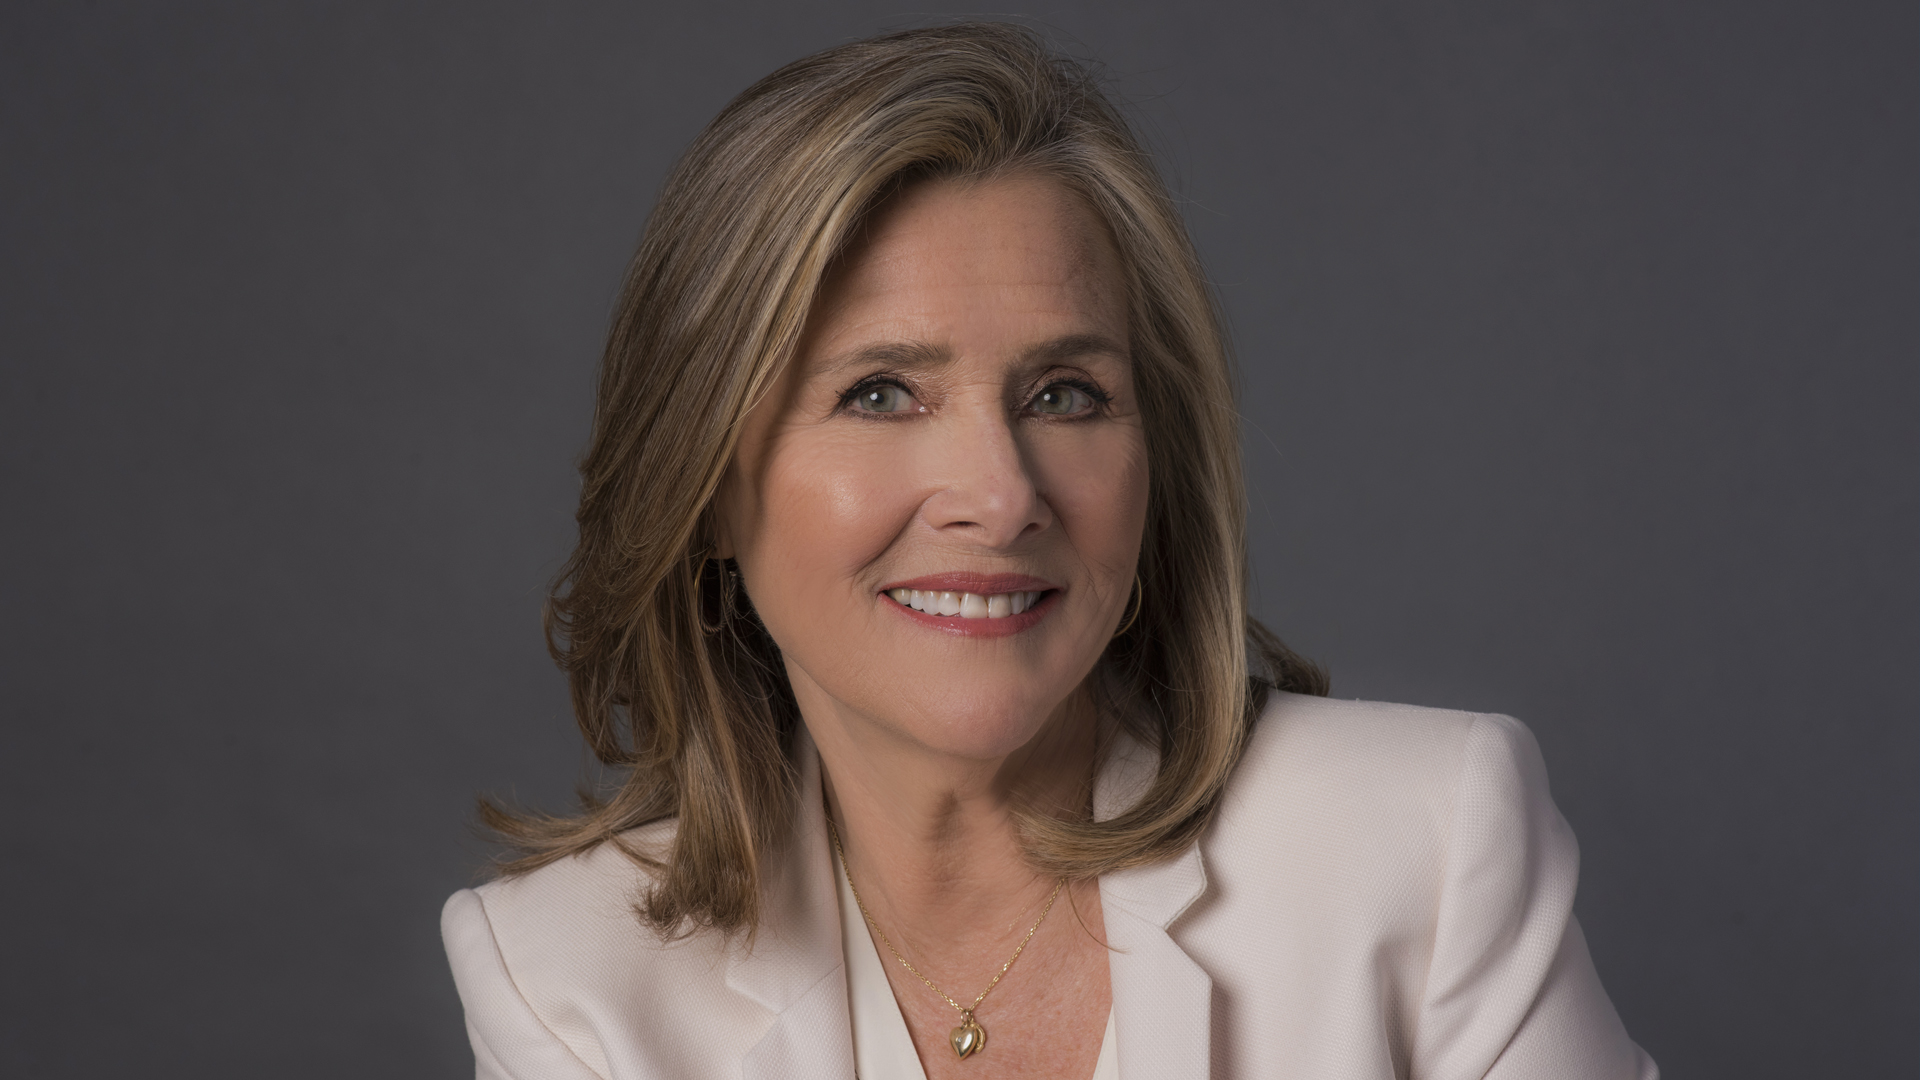 Meet the host, Meredith Vieira